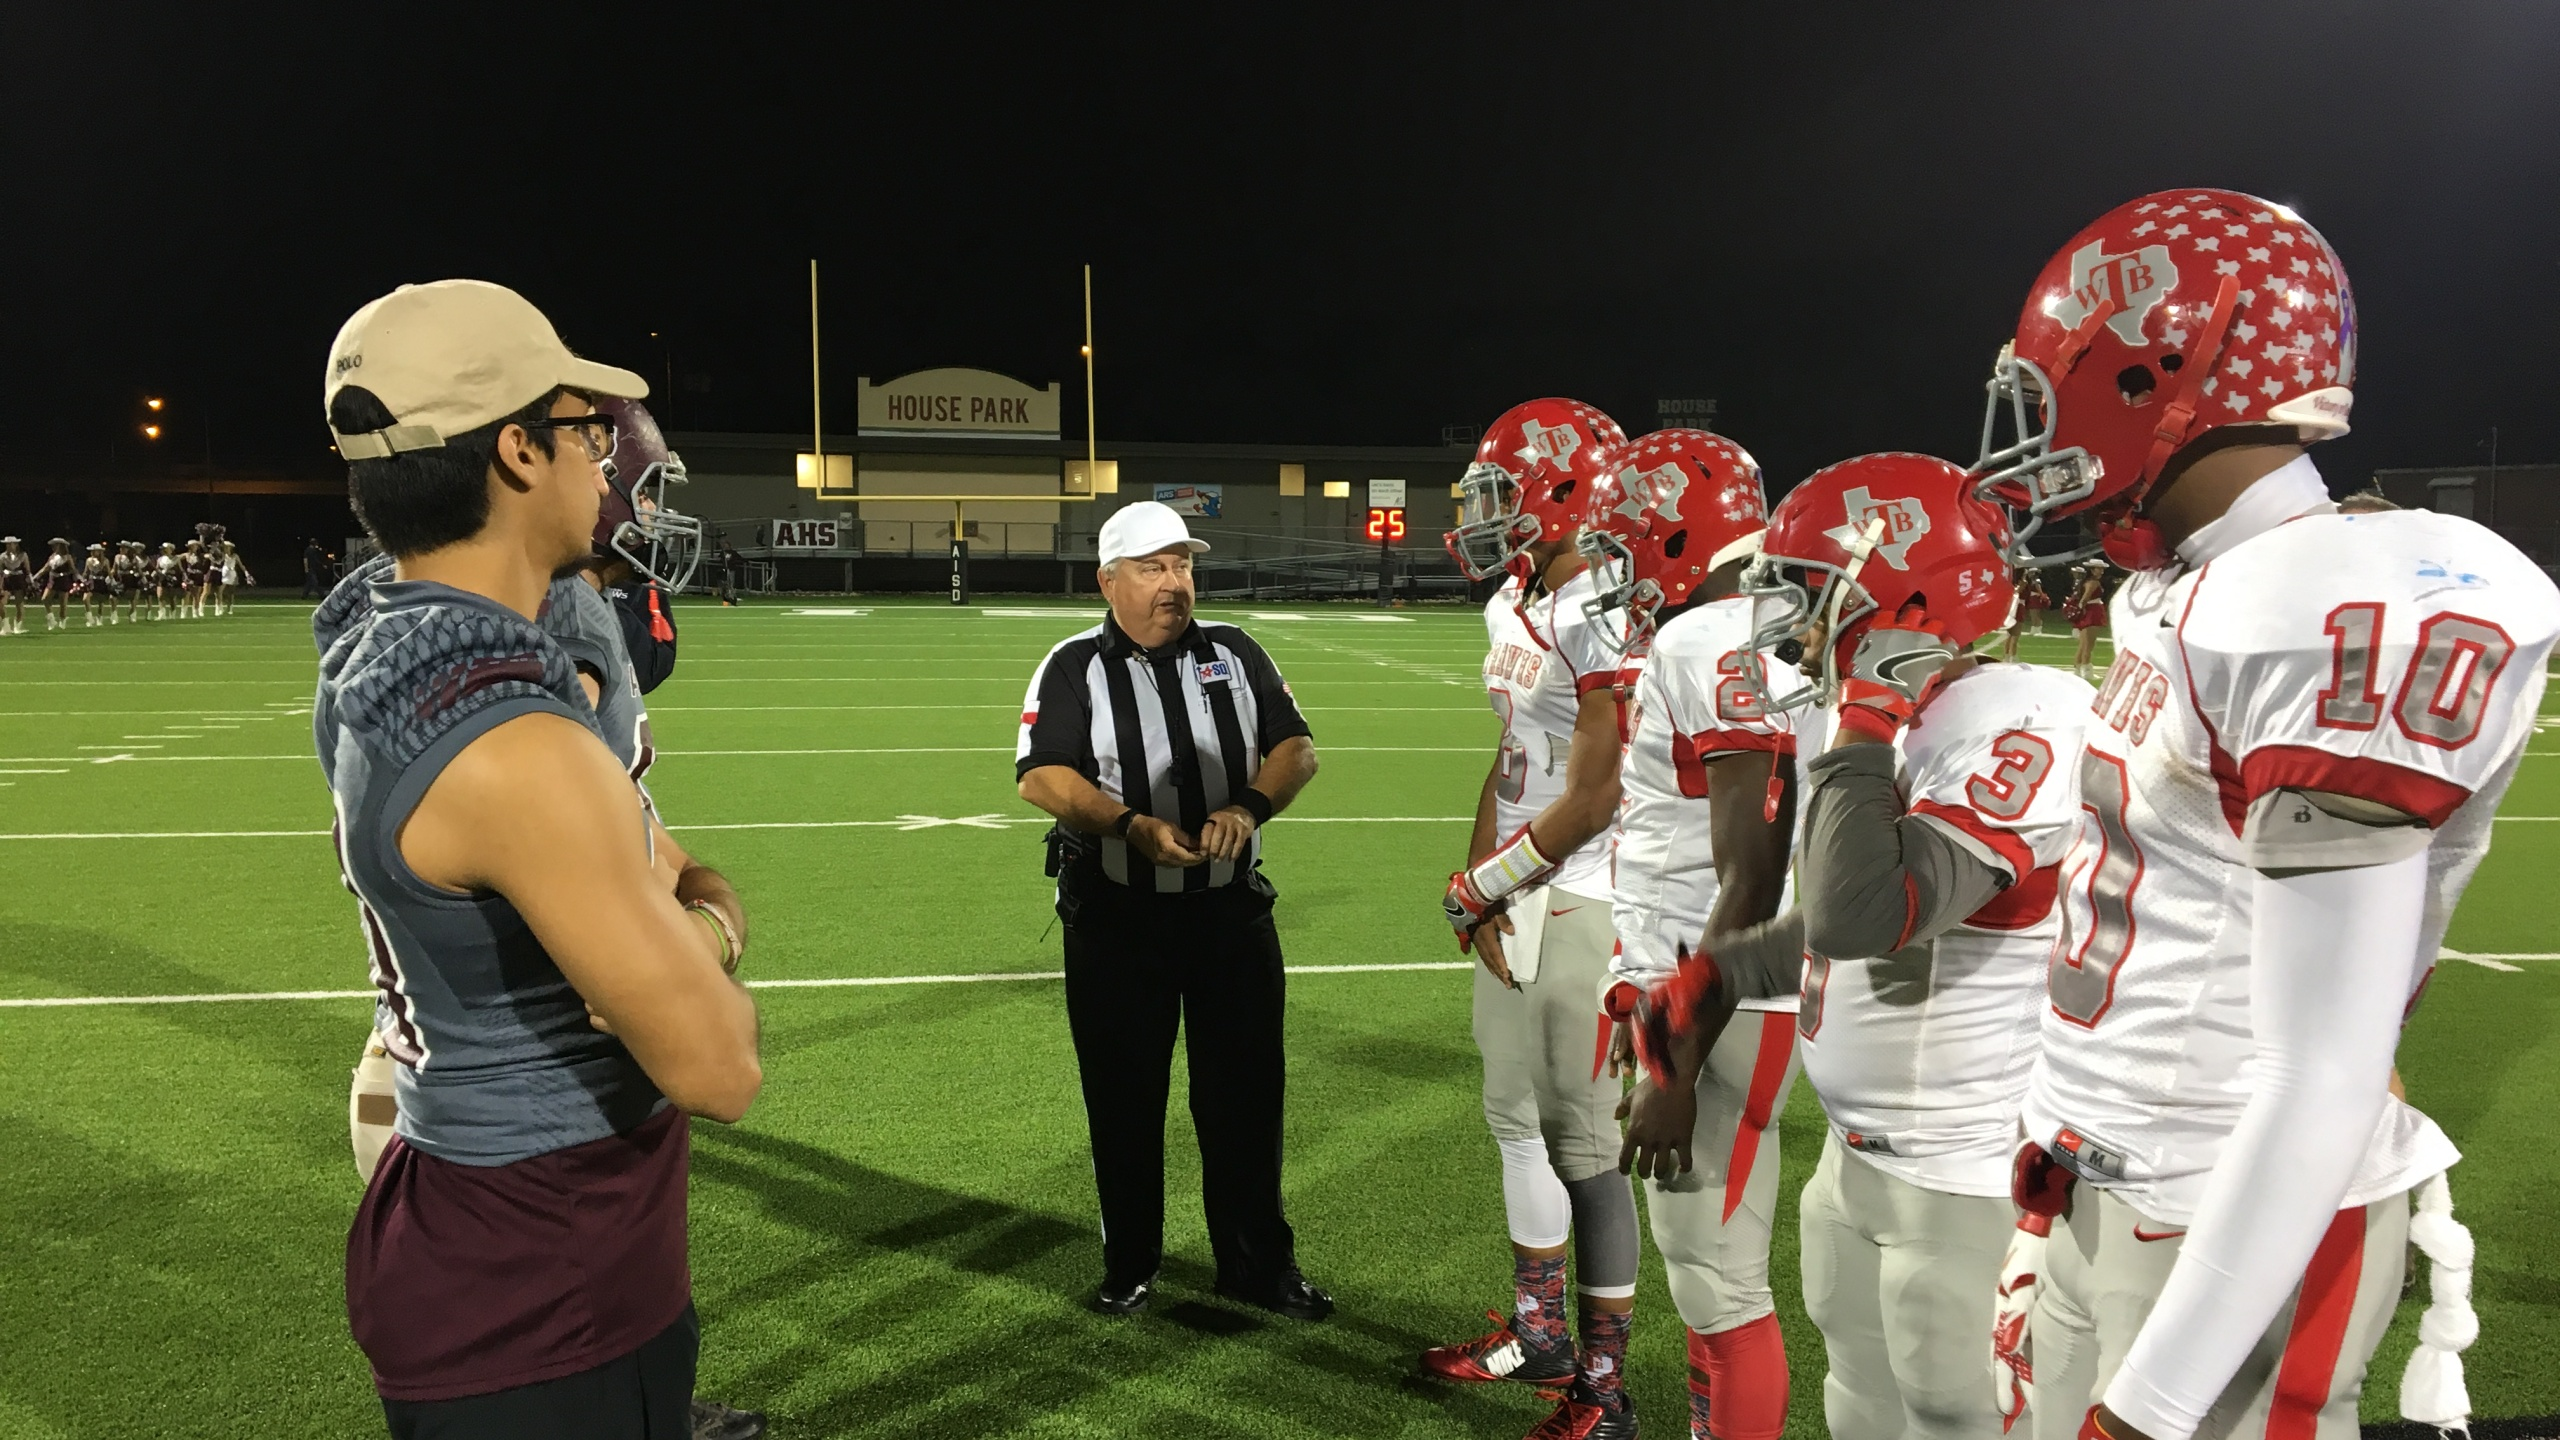 Travis vs Austin High at House Park football (KXAN Photo_Chris Tavarez)_370865